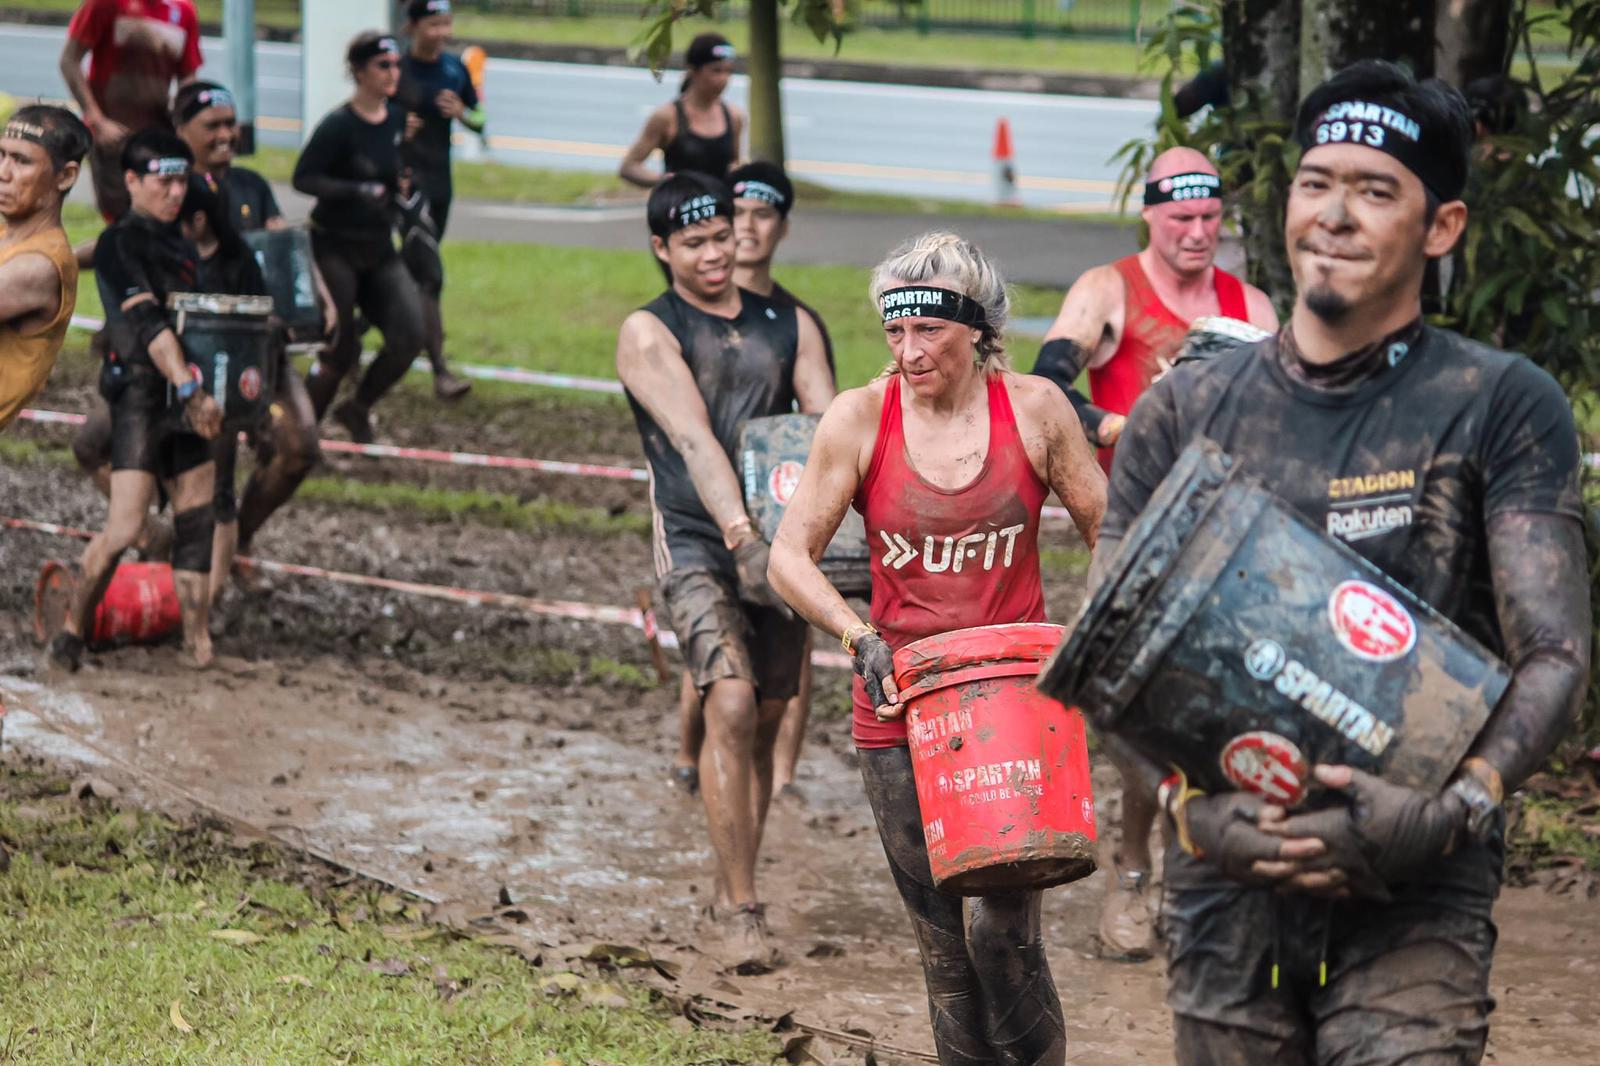 Team UFIT at the Spartan Race in Yio Chu Kang in April 2019